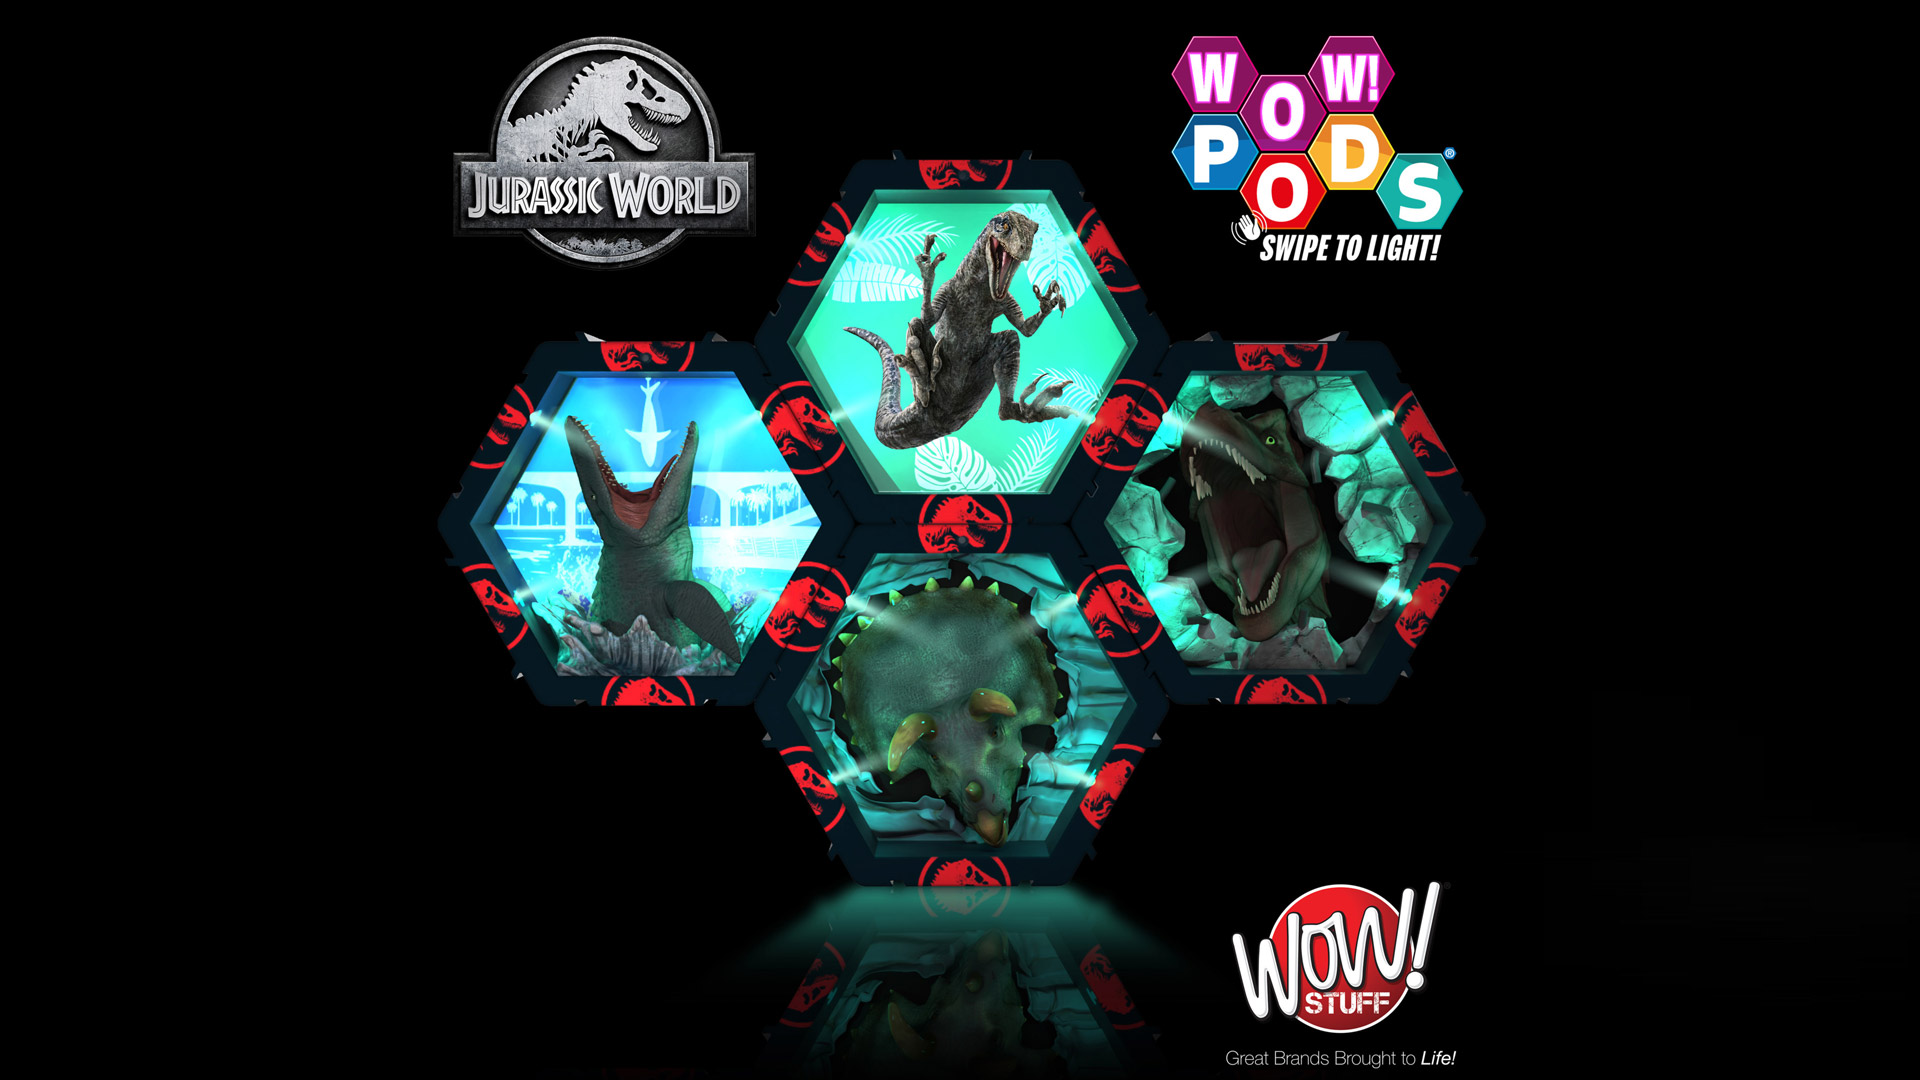 Wow! Stuff Announces All-new Jurassic World Product Line After Universal Brands Deal